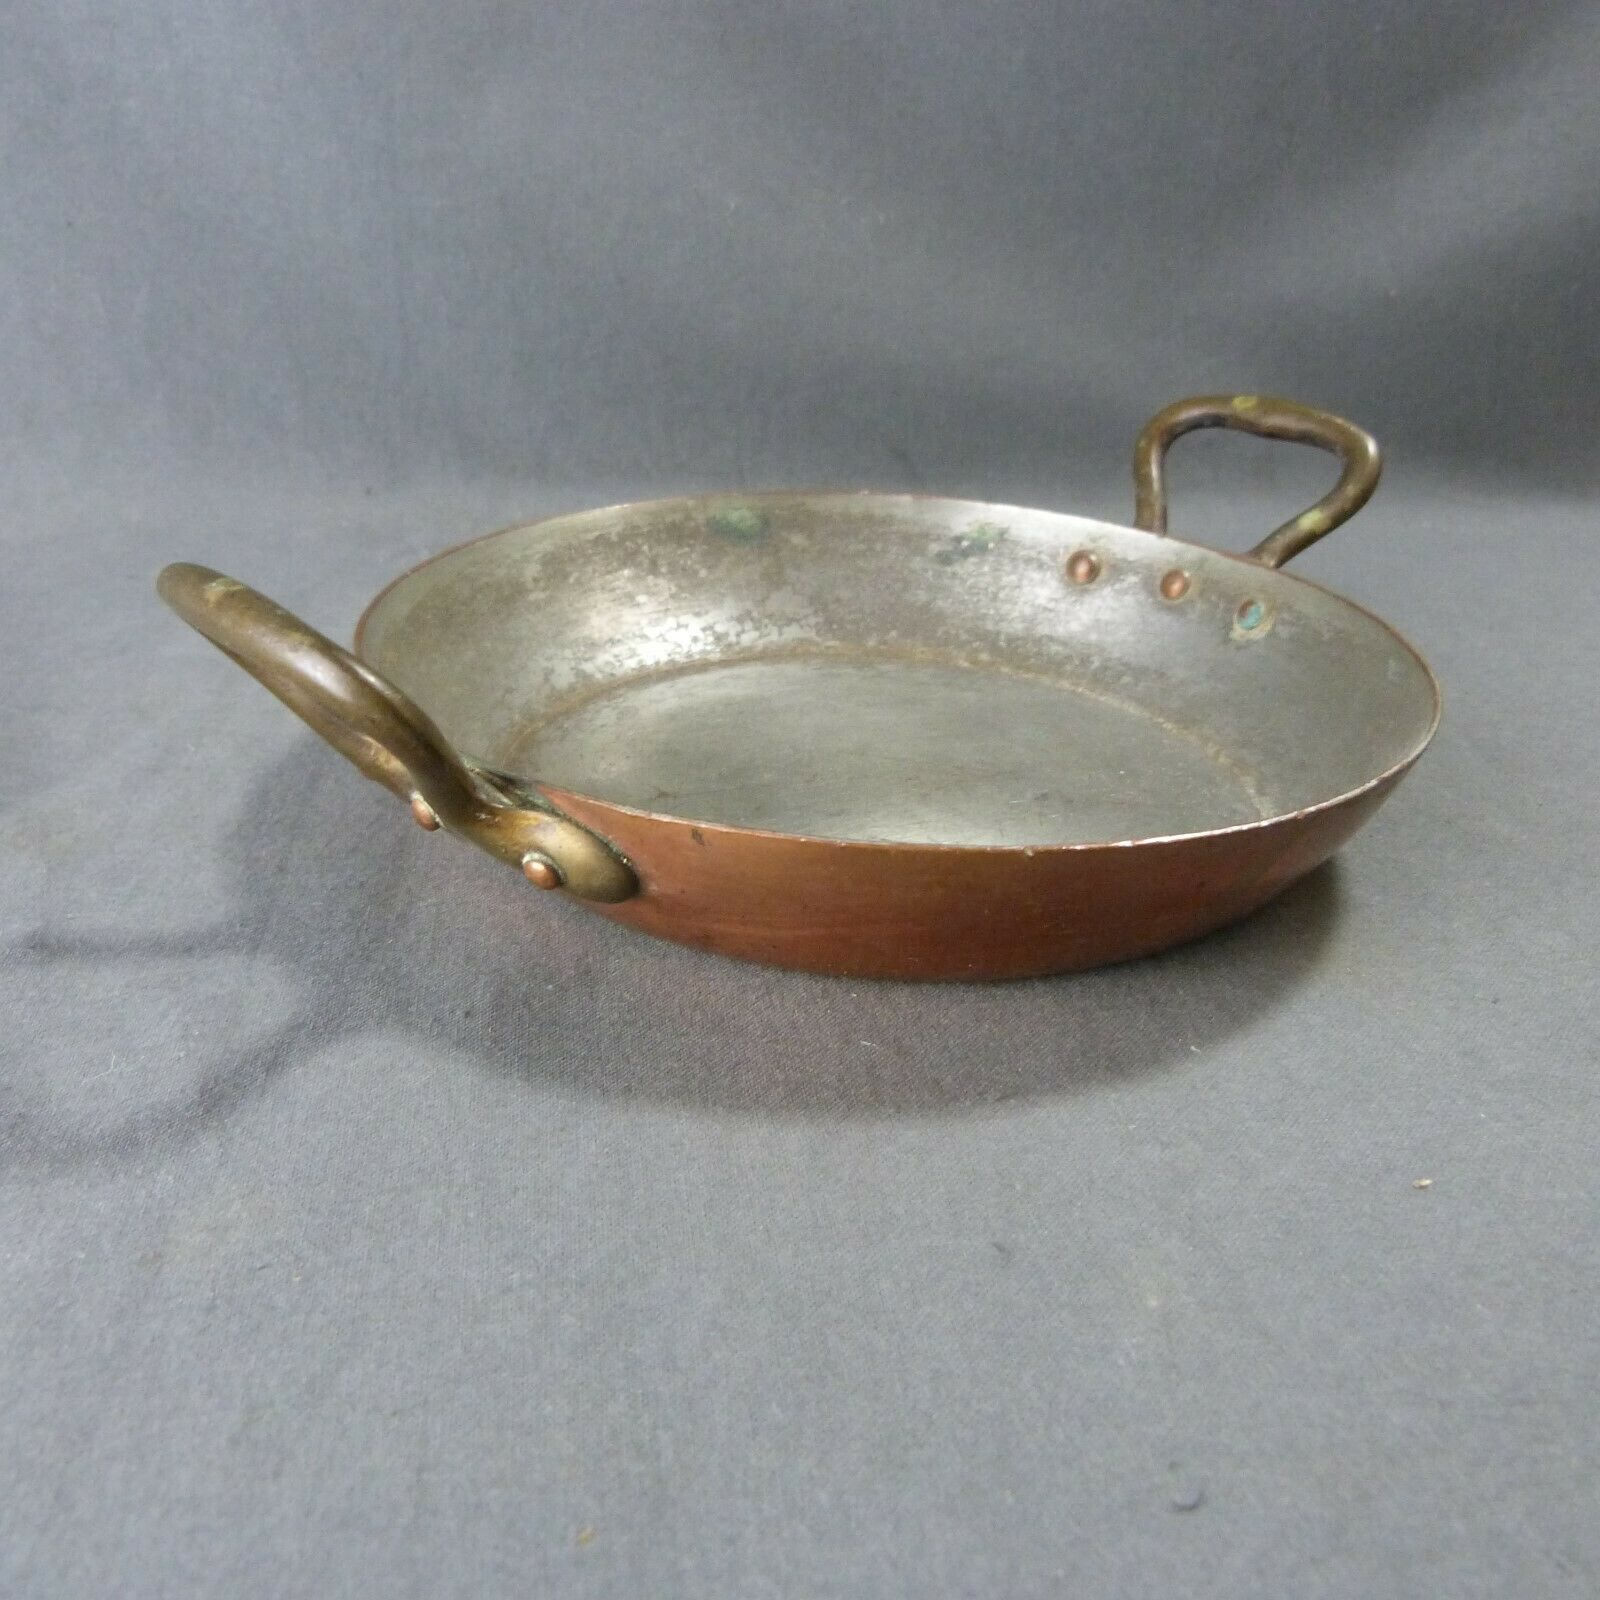 French Antique Vintage Round Copper Frying Pan Skillet Cooking Plate 6 1 2 16cm